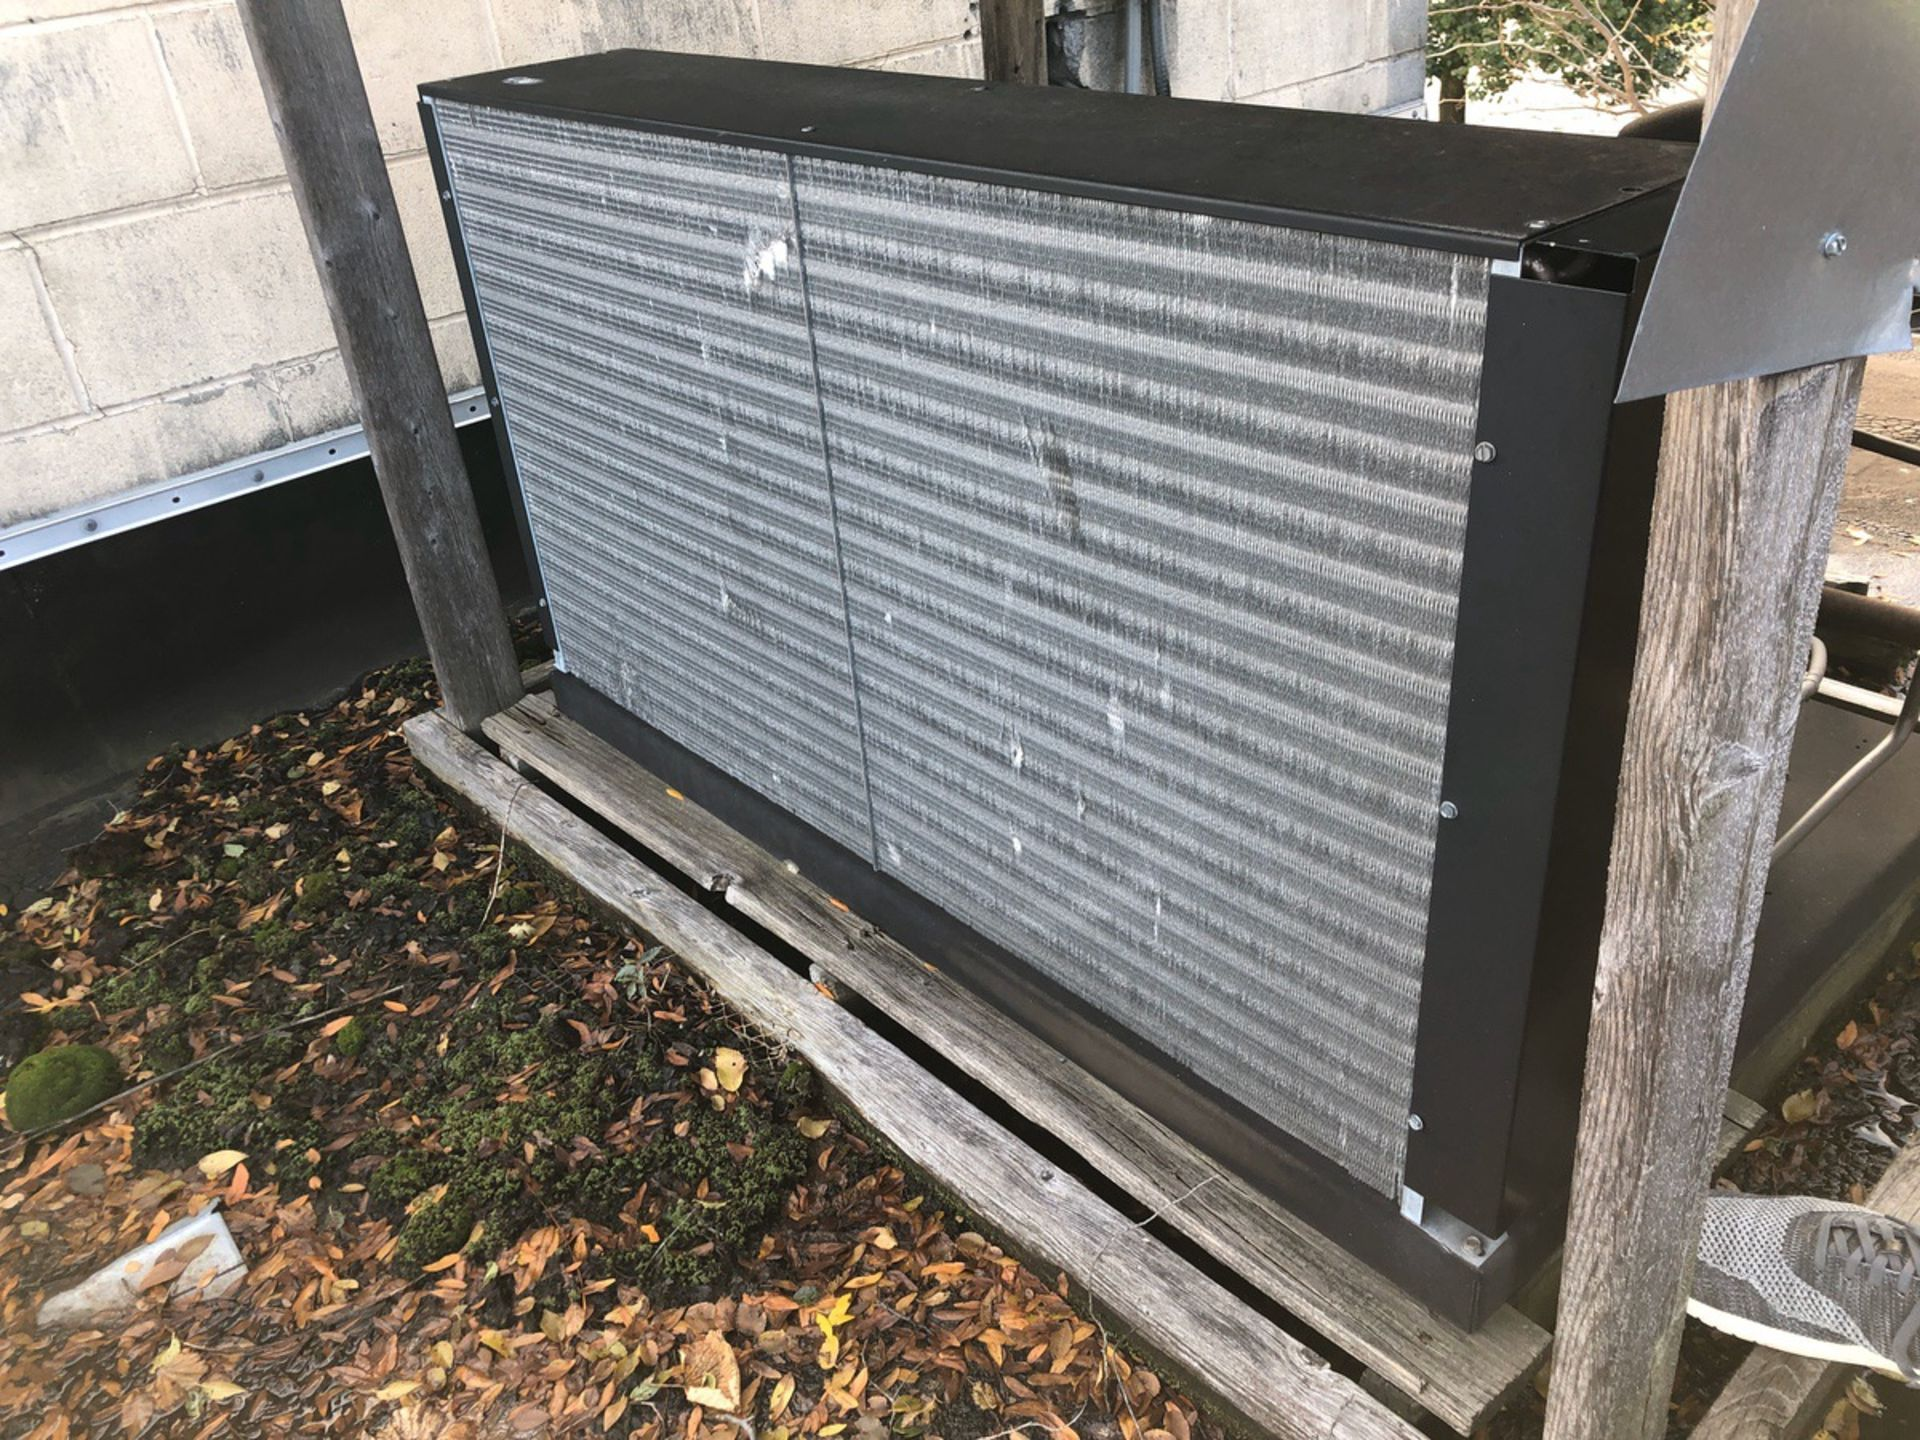 Lot 28 - 2008 Glycol Chiller, 7.5 HP | Sub to Bulk | Rig Fee: $500